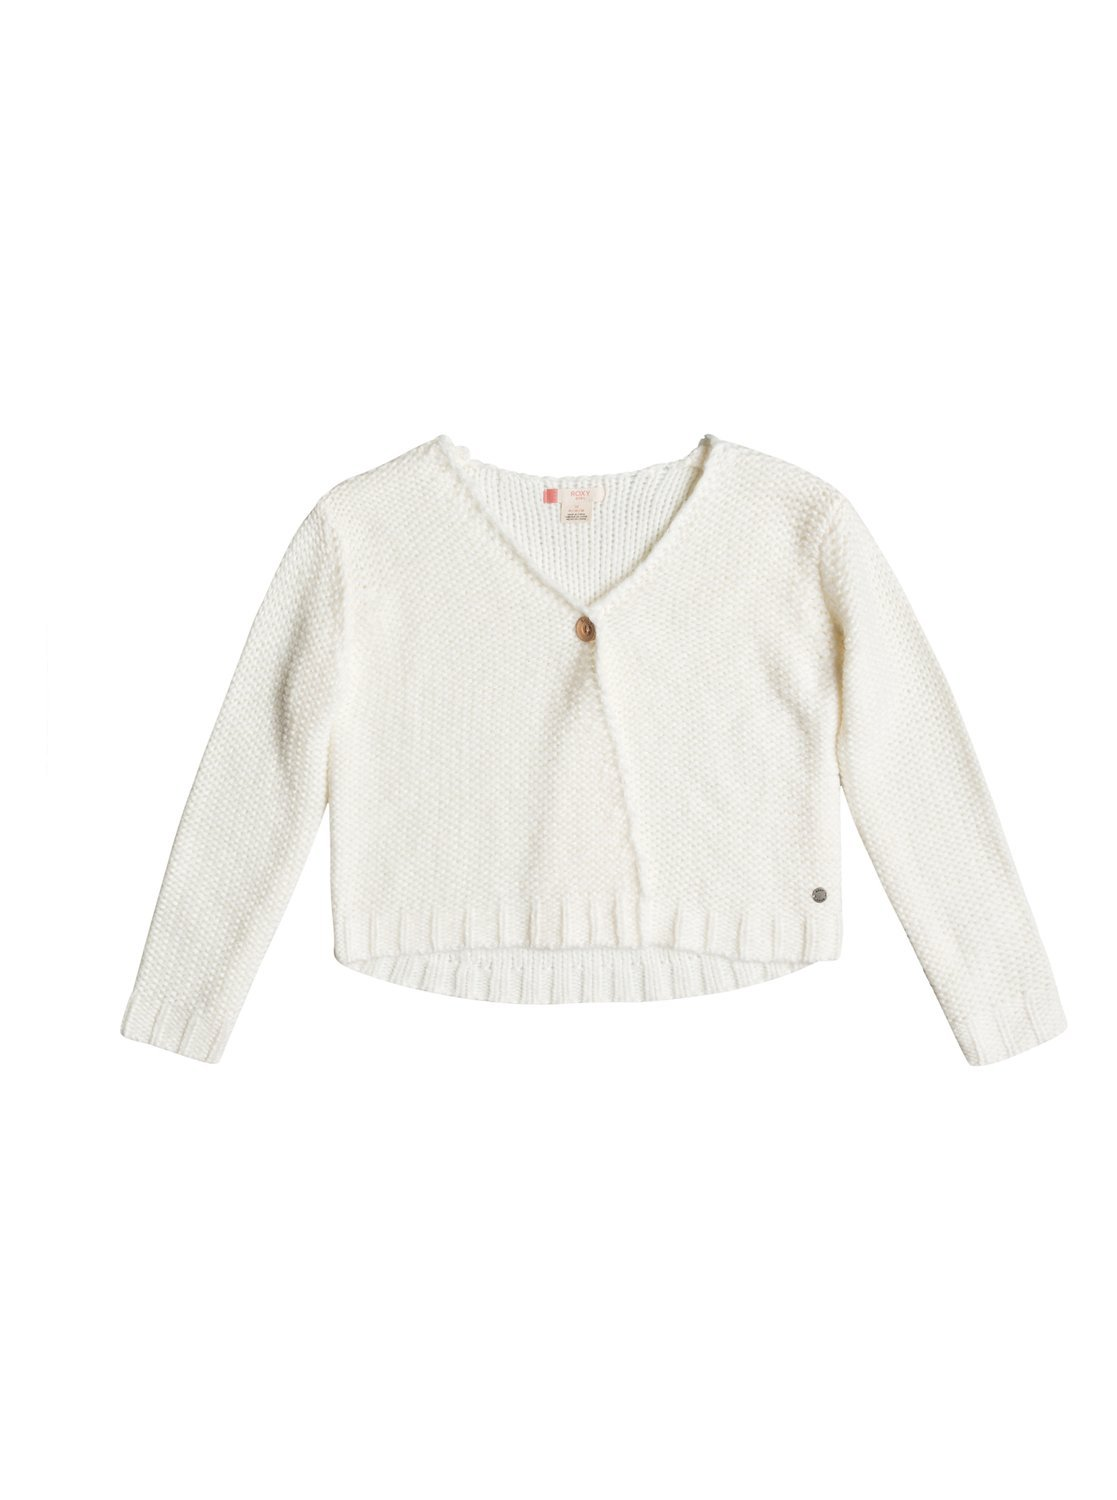 Roxy Girls Unreflecting Love - Knitted Cardigan - Girls 7-14 - 12 - White Marshmellow 12/L